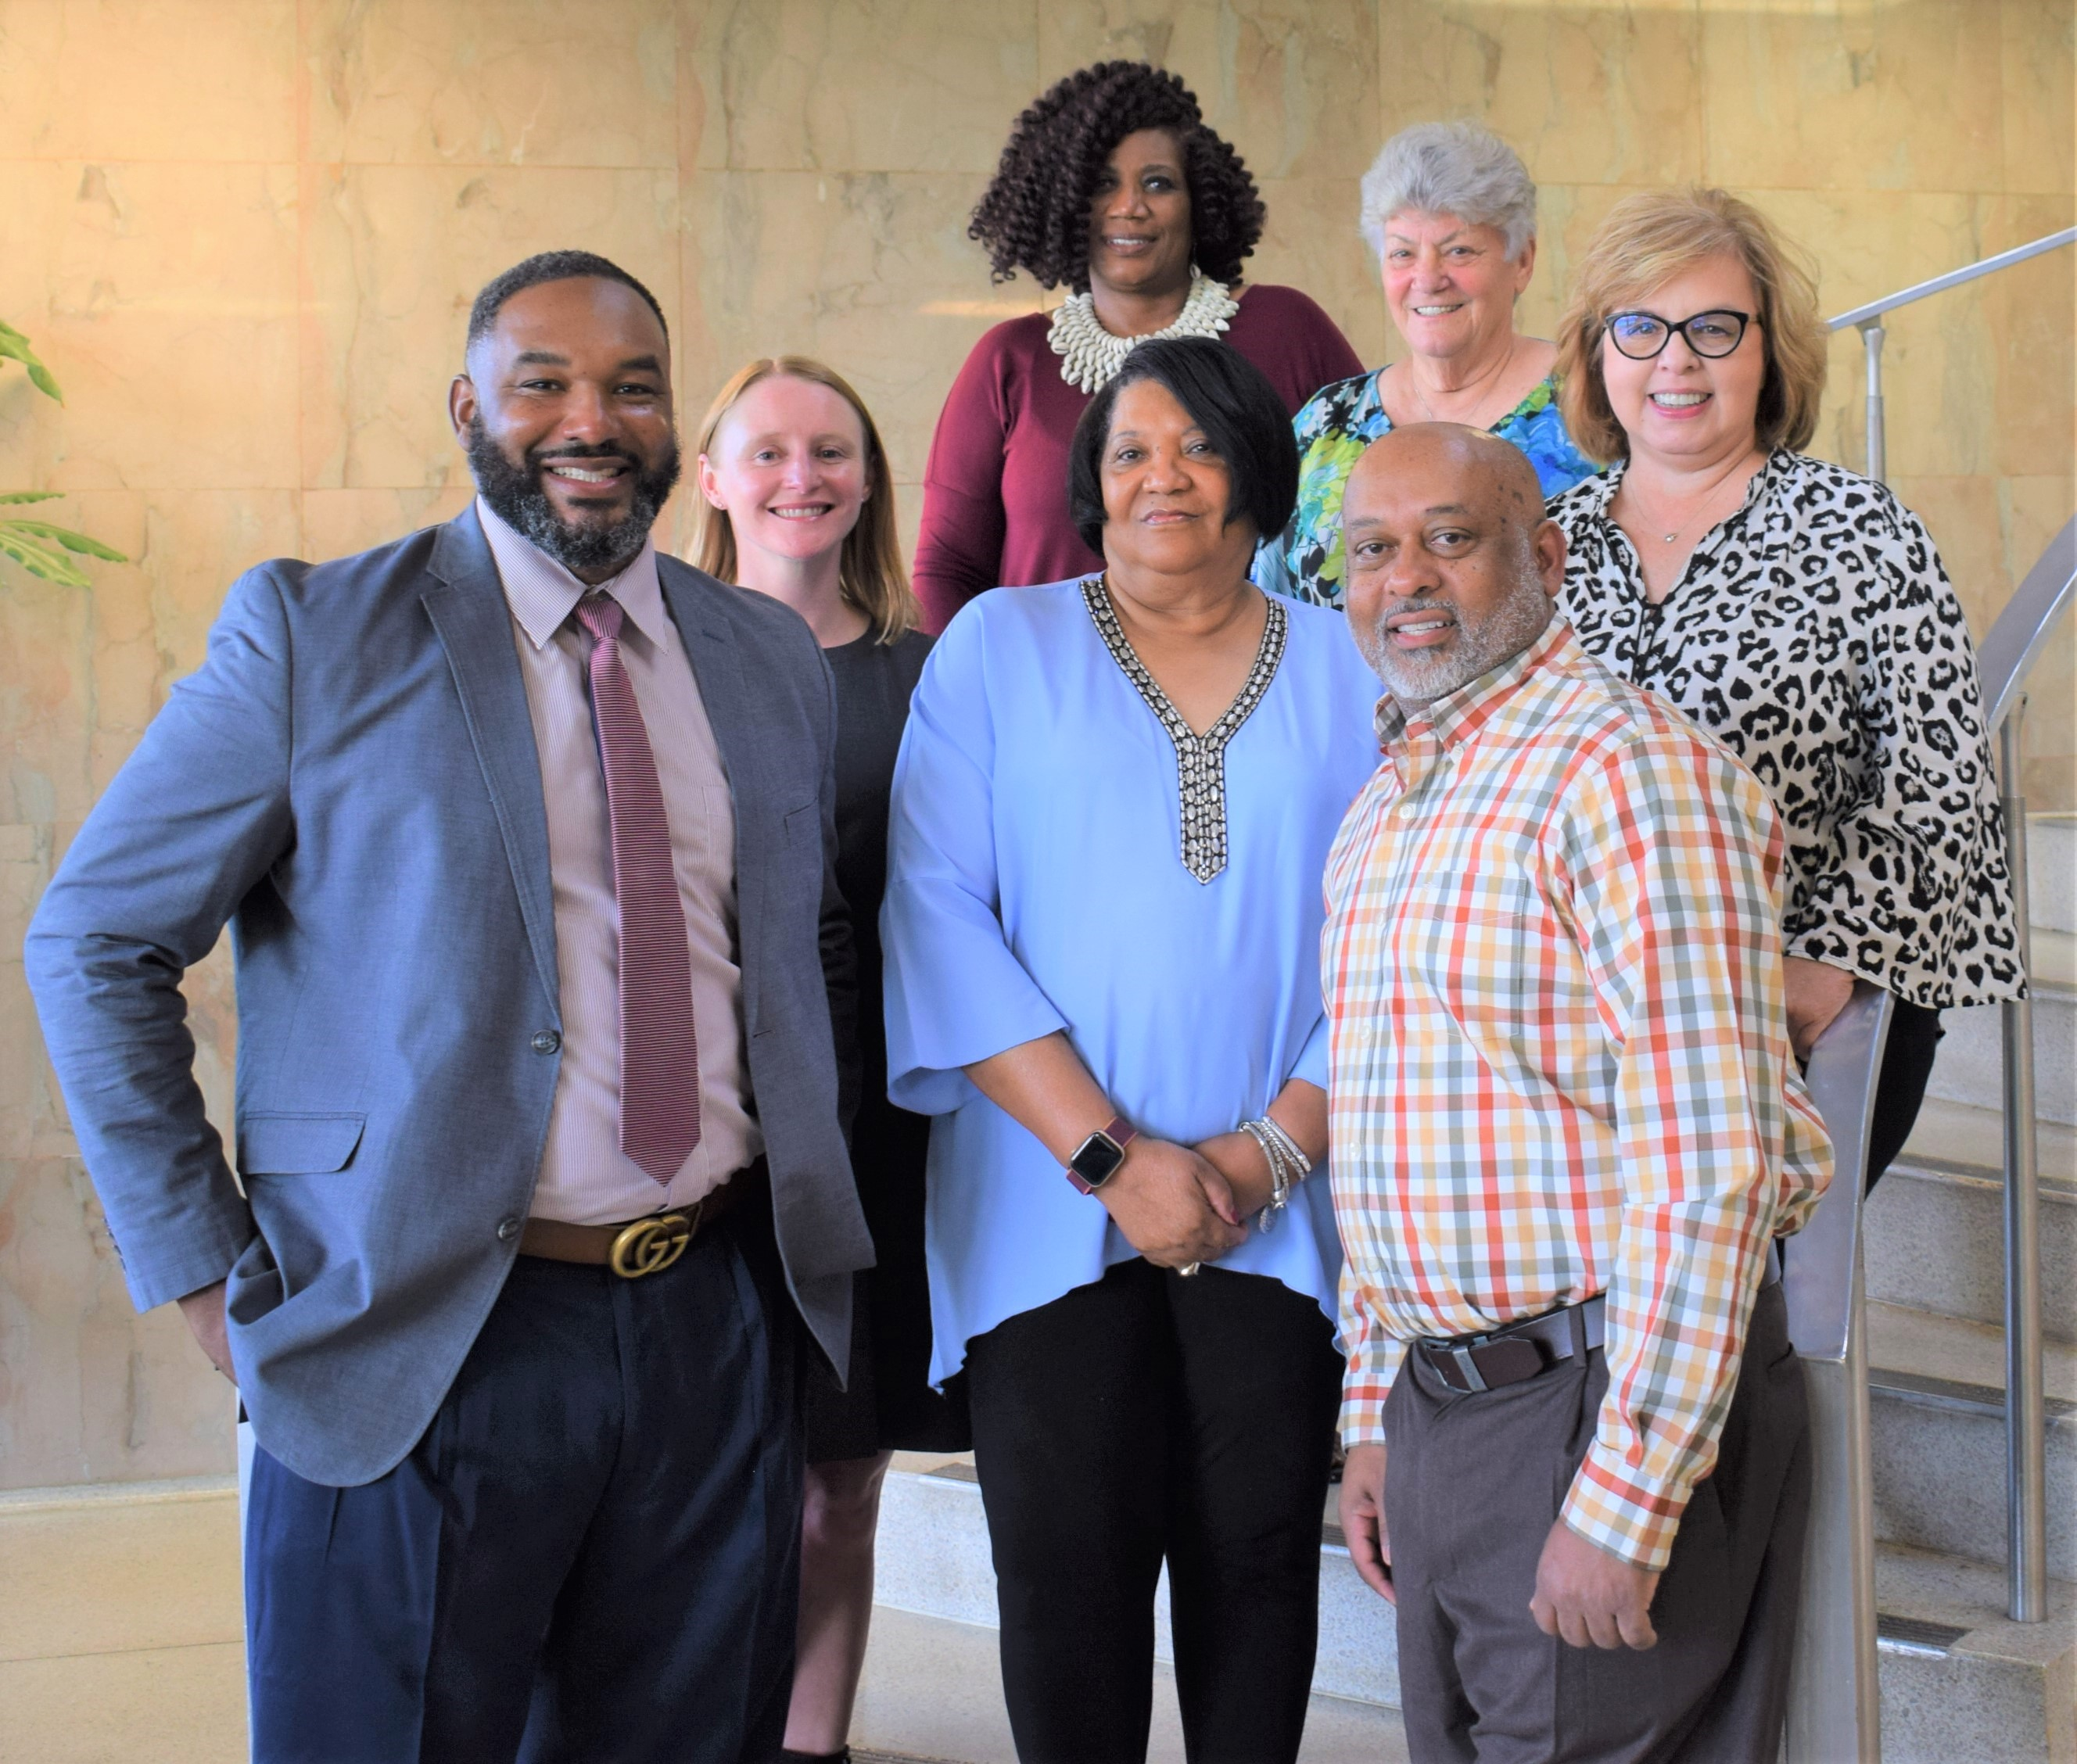 Members of the Blytheville School District's Board of Education are (front, from left) Desmond Hammett, Barbara Wells, Billy Fair (in back, from left) Erin Carrington, Michelle Sims, Tobey Johnson, and Tracey Ritchey.